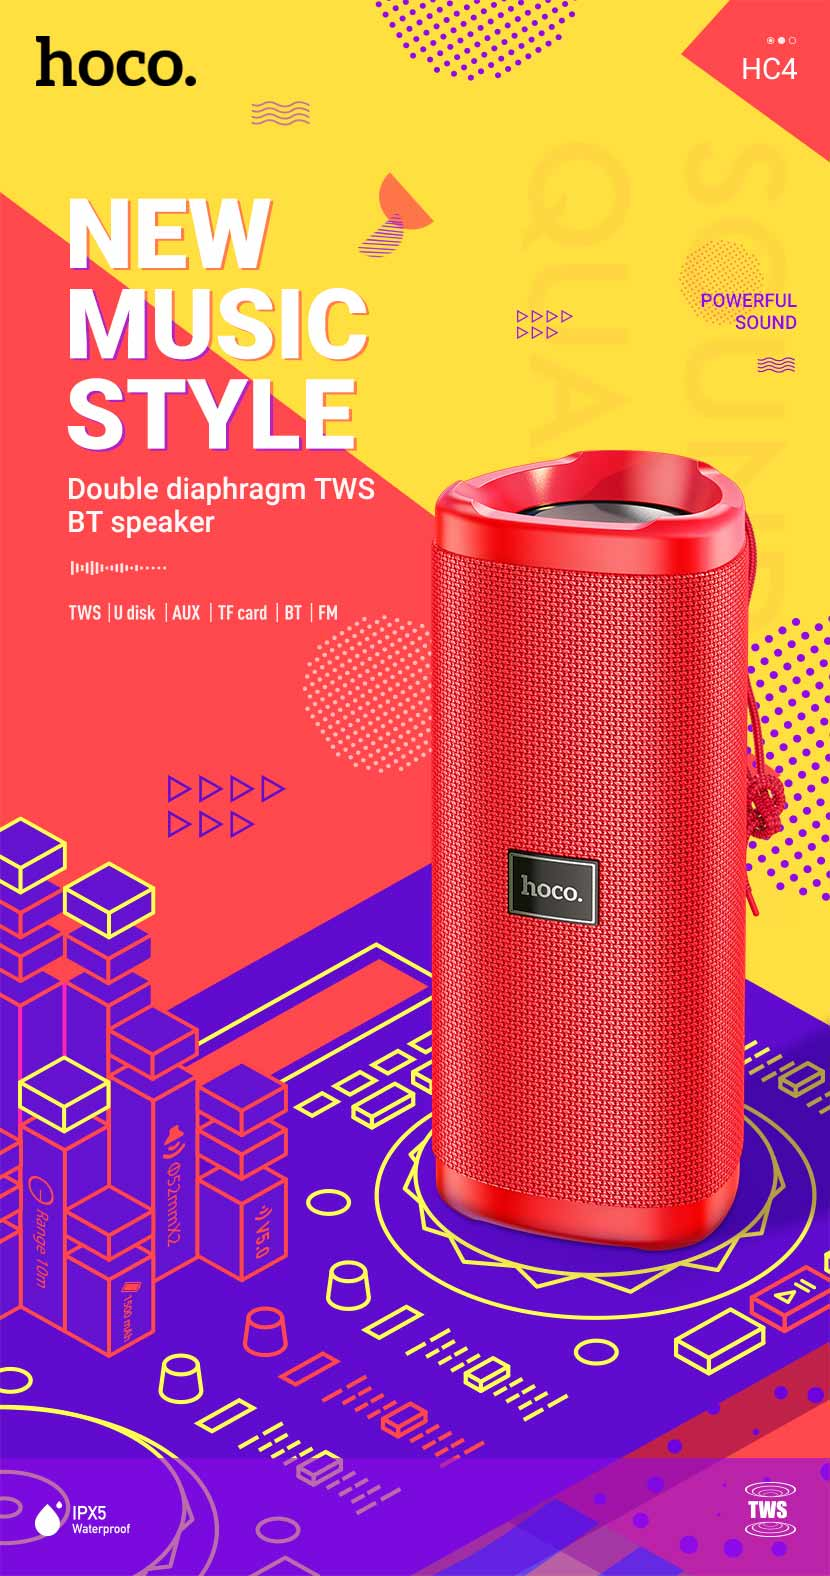 hoco news hc4 bella sports bt speaker en